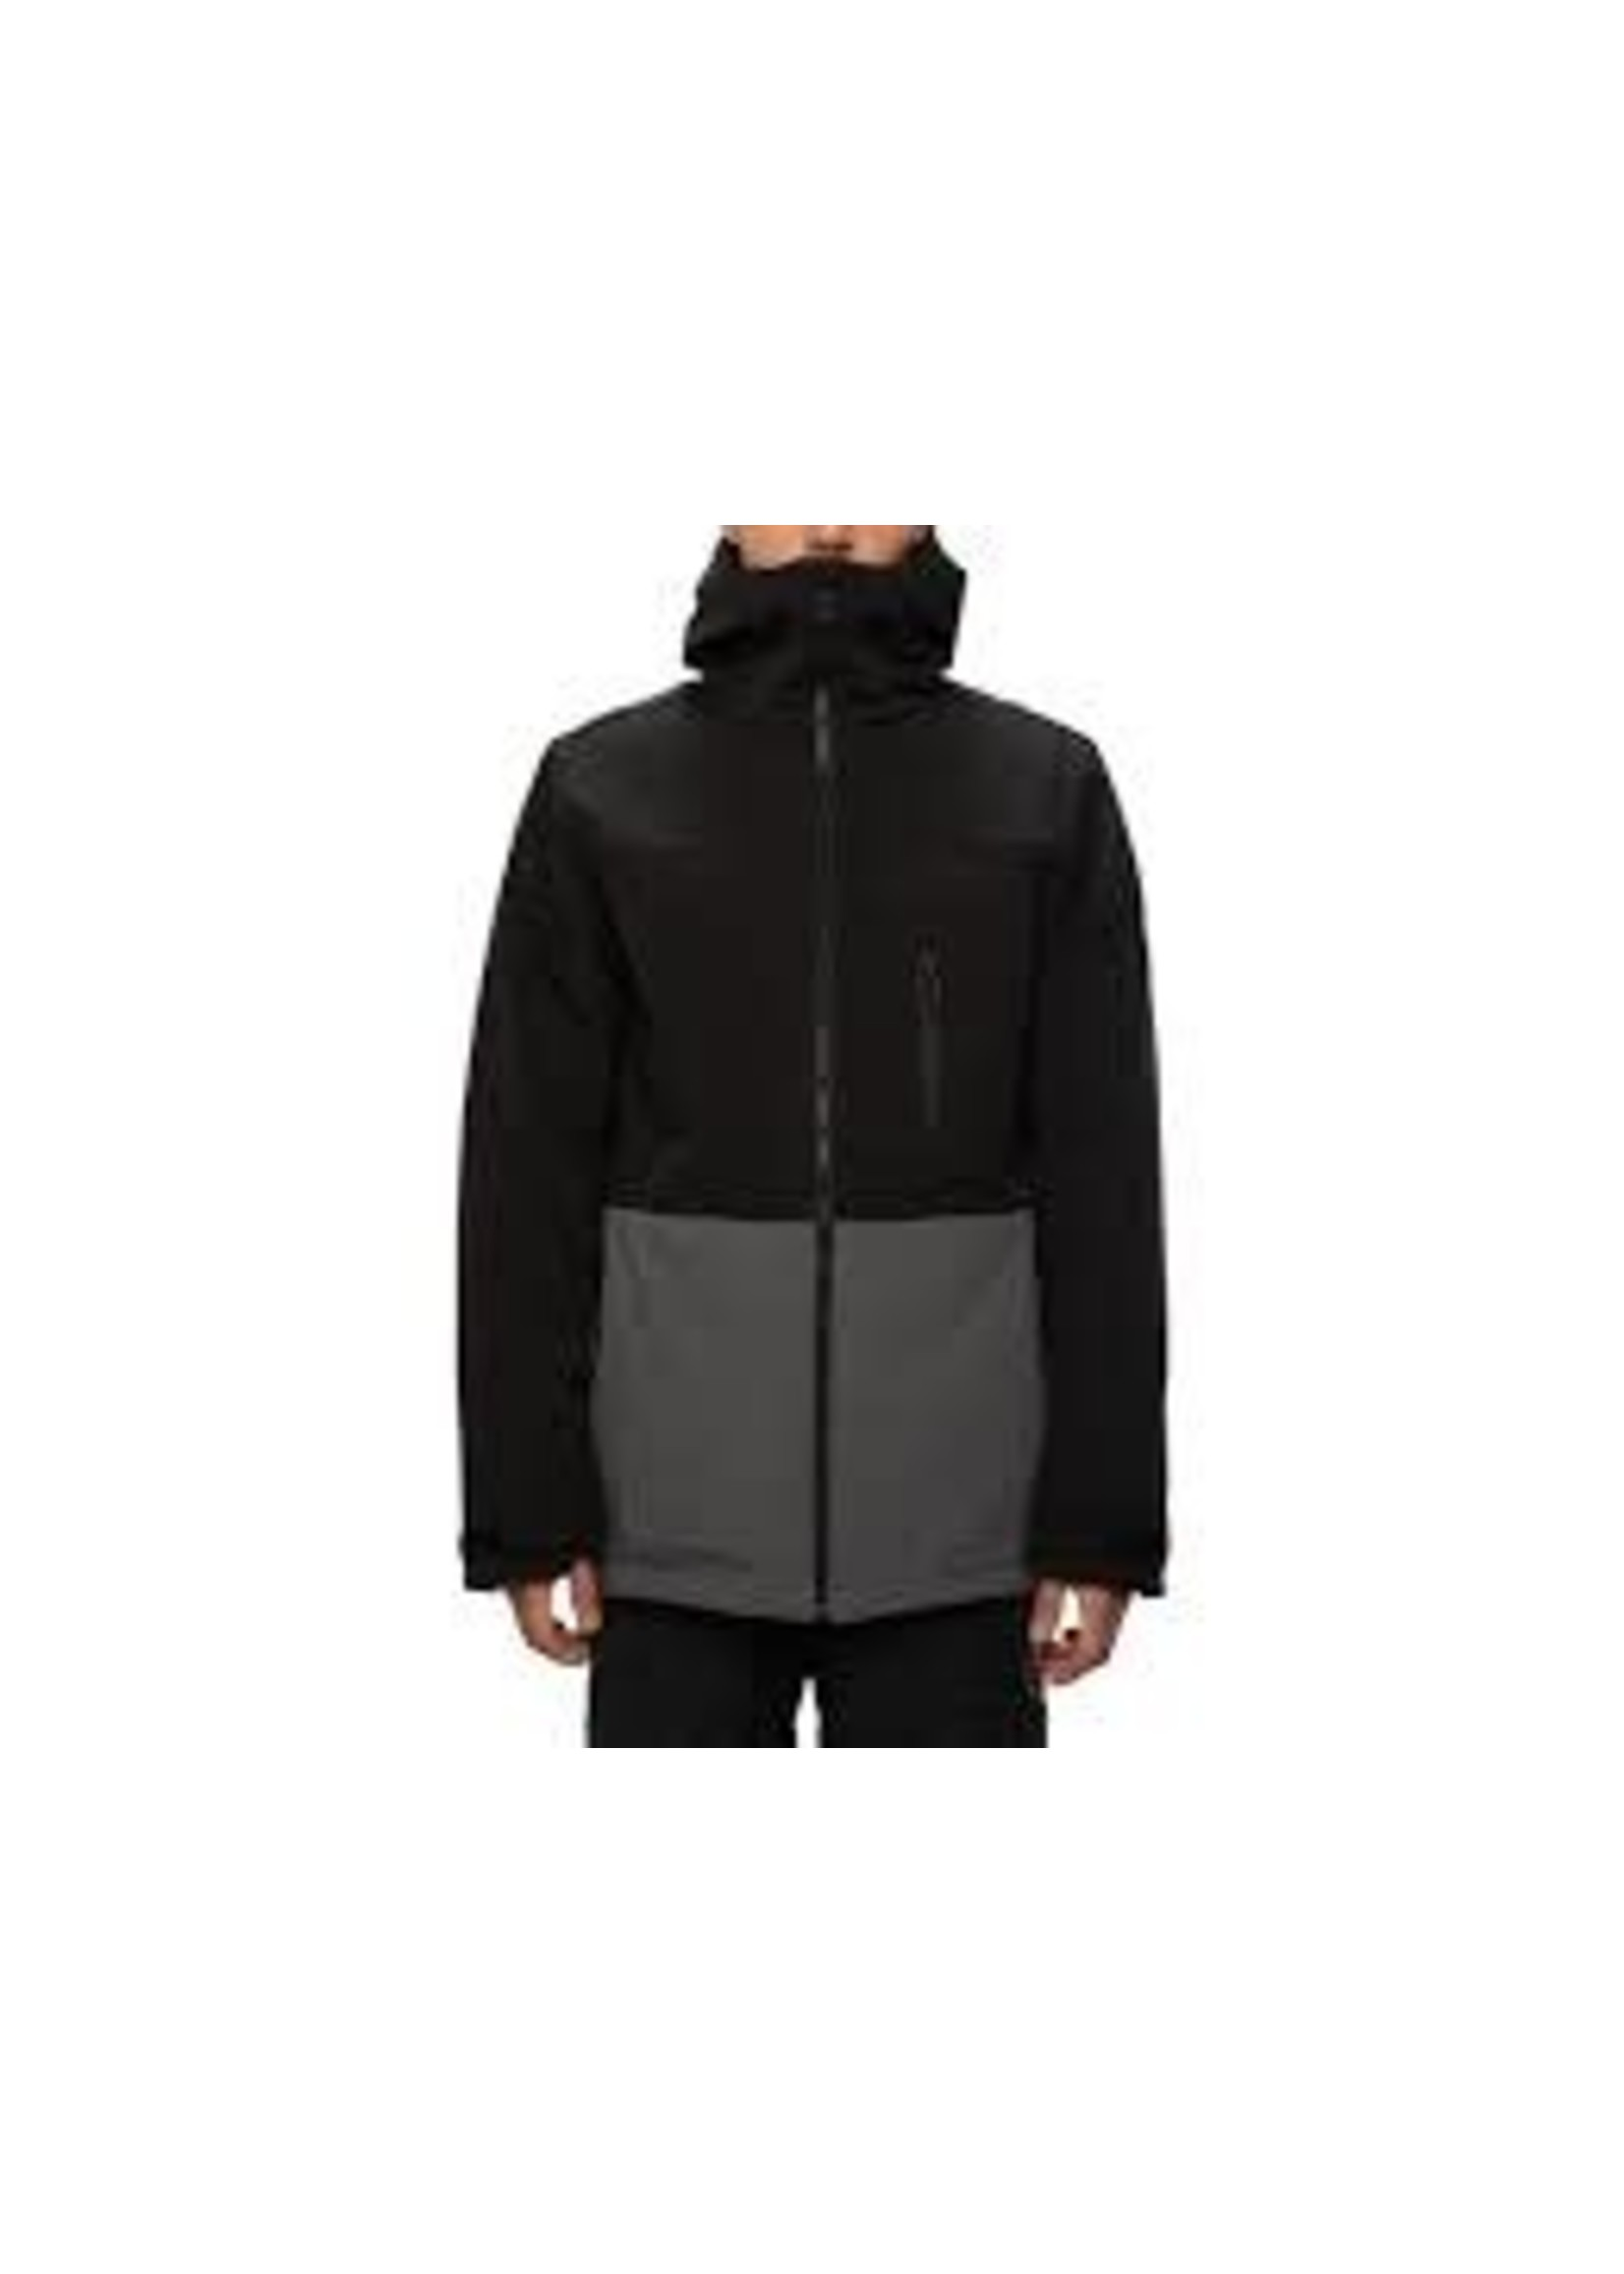 686 686 SMARTY Form 3-in-1 Jacket 2020